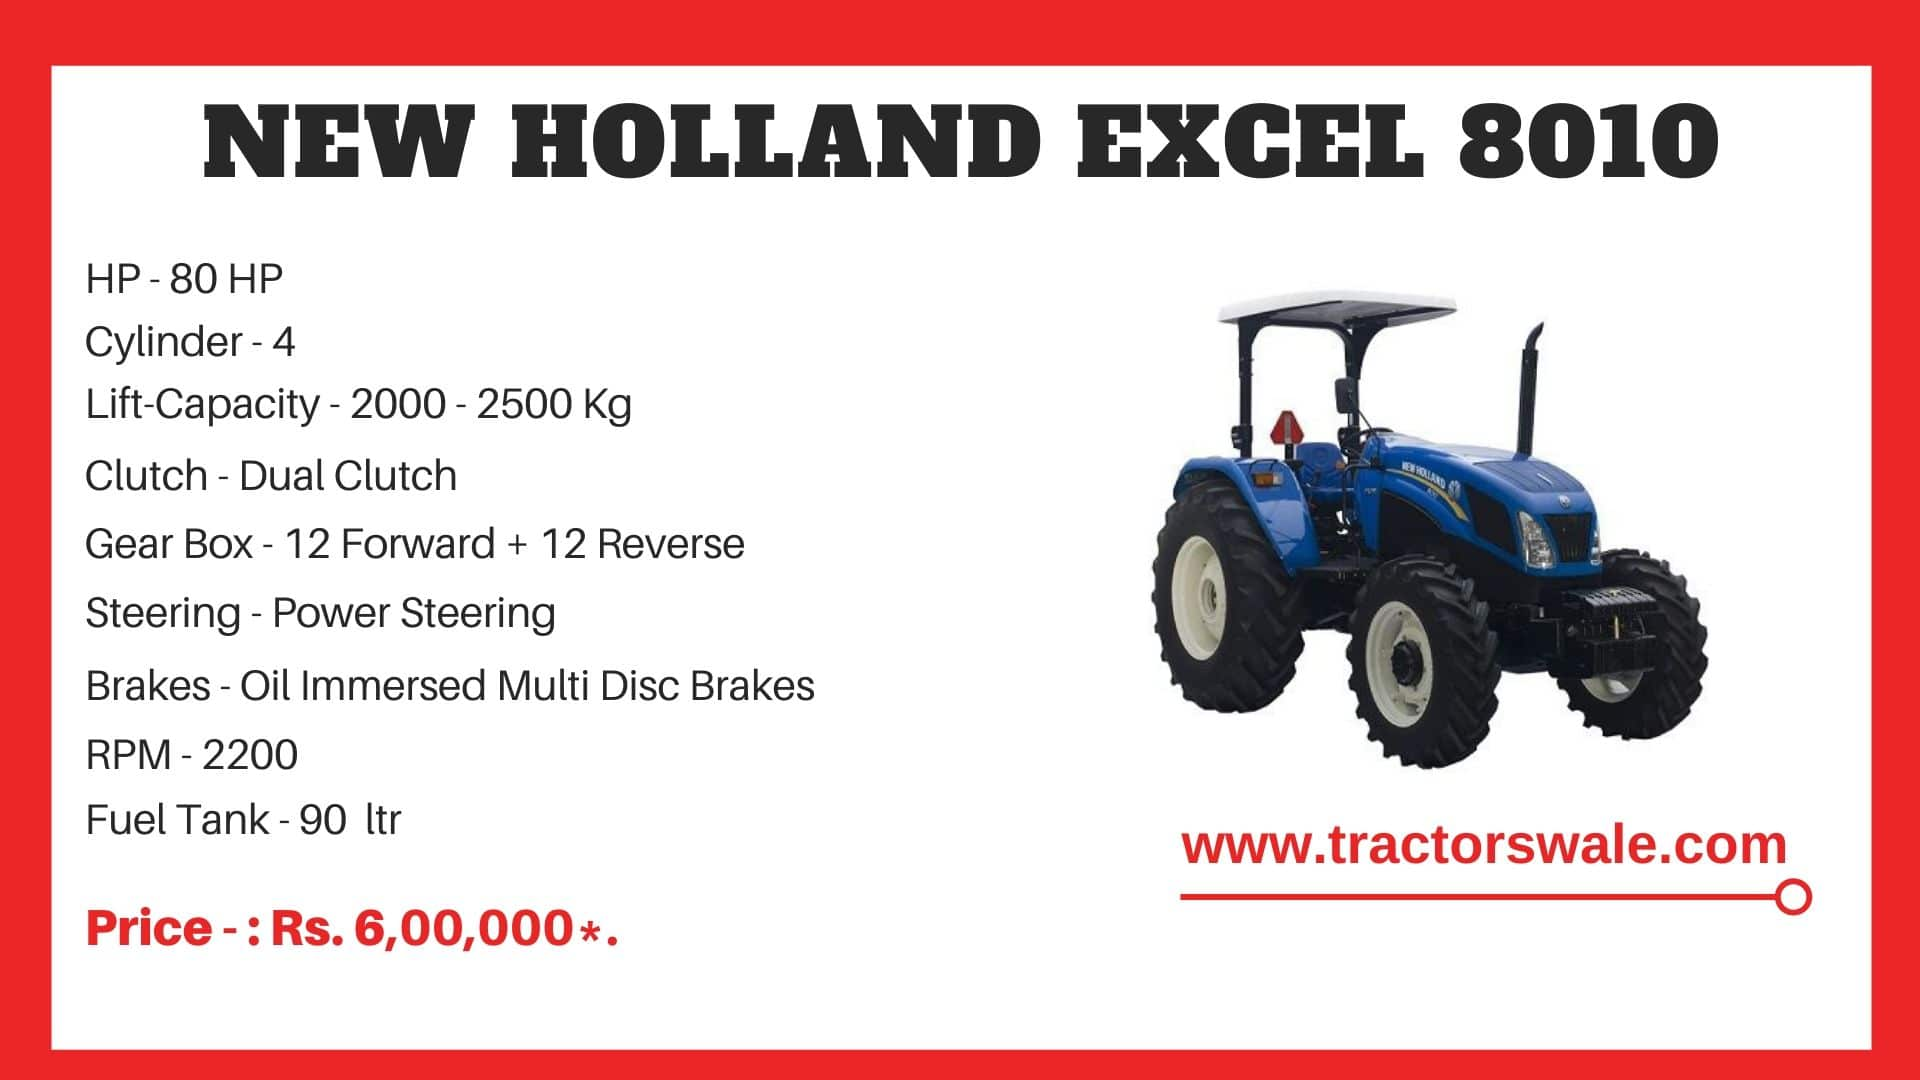 New Holland Excel 8010 tractor specs